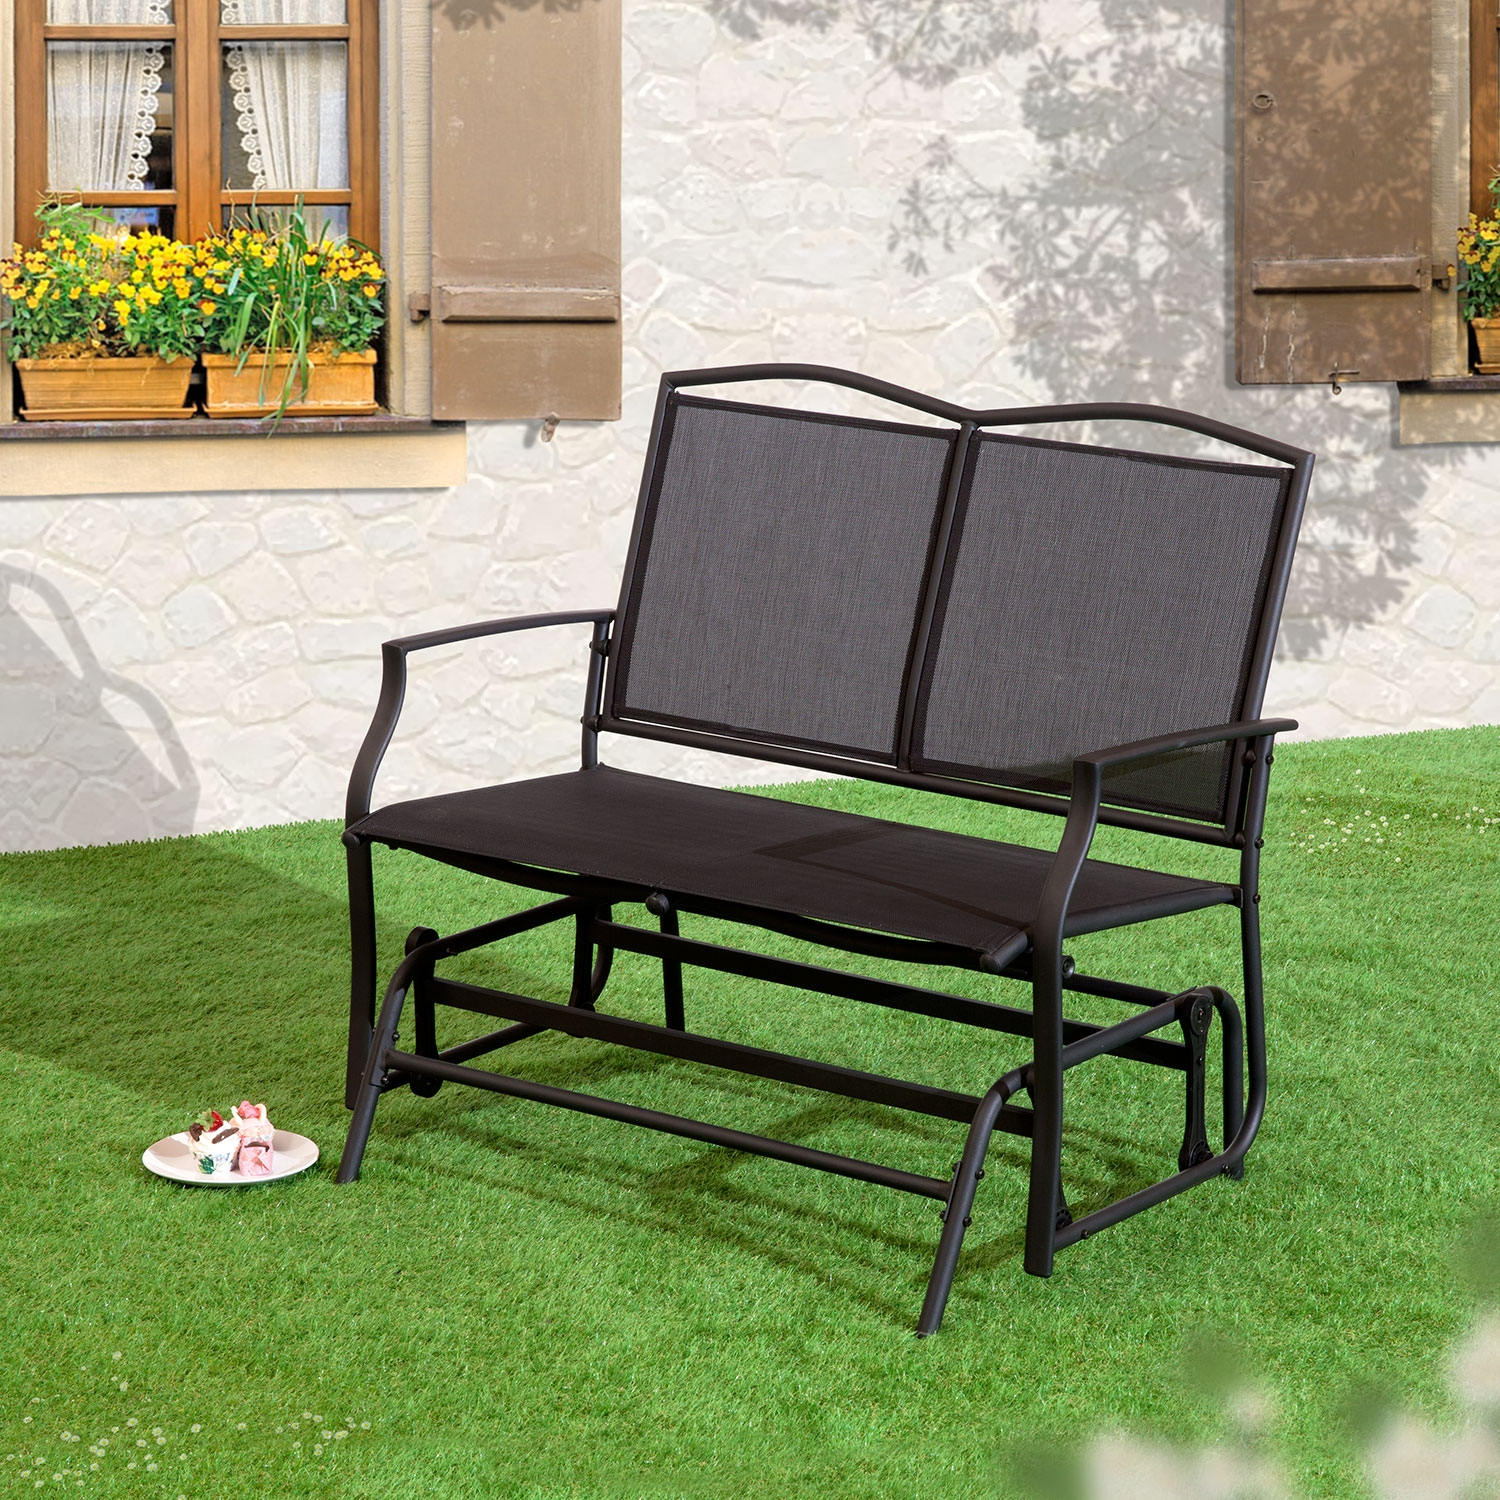 Details About Black 2 Seat Glider Bench For Twin Seat Glider Benches (View 4 of 25)